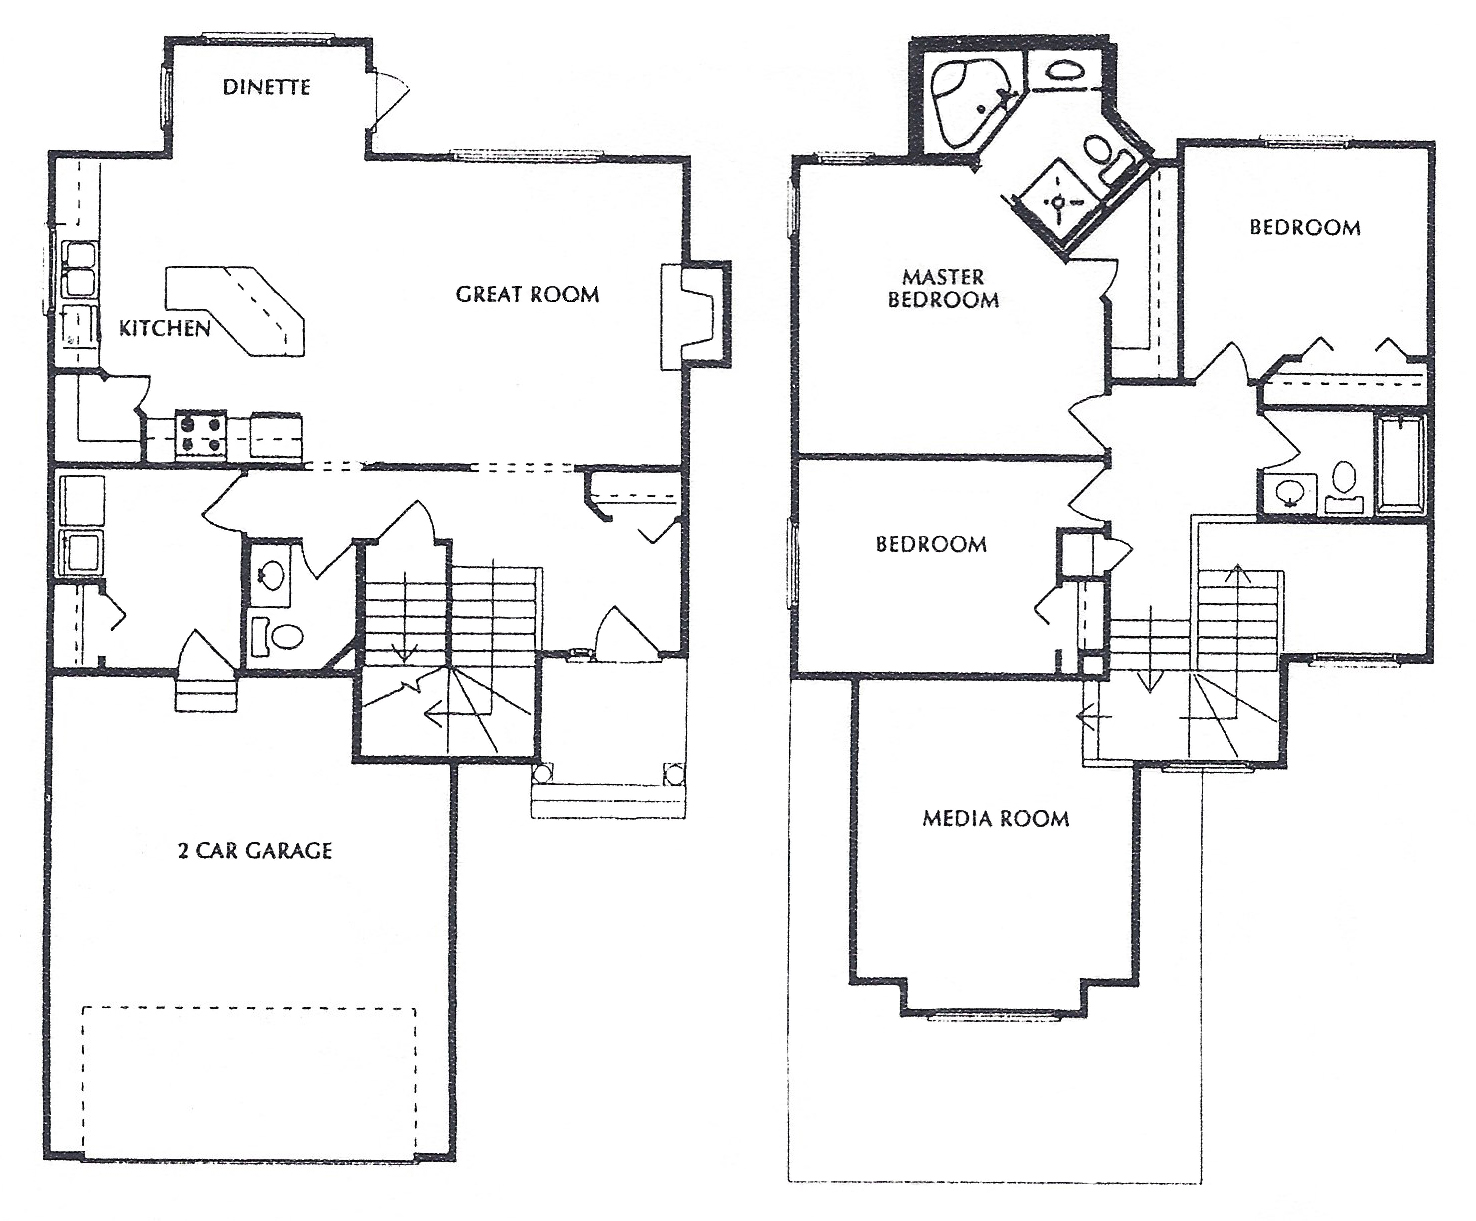 The Viscount Floor Plan